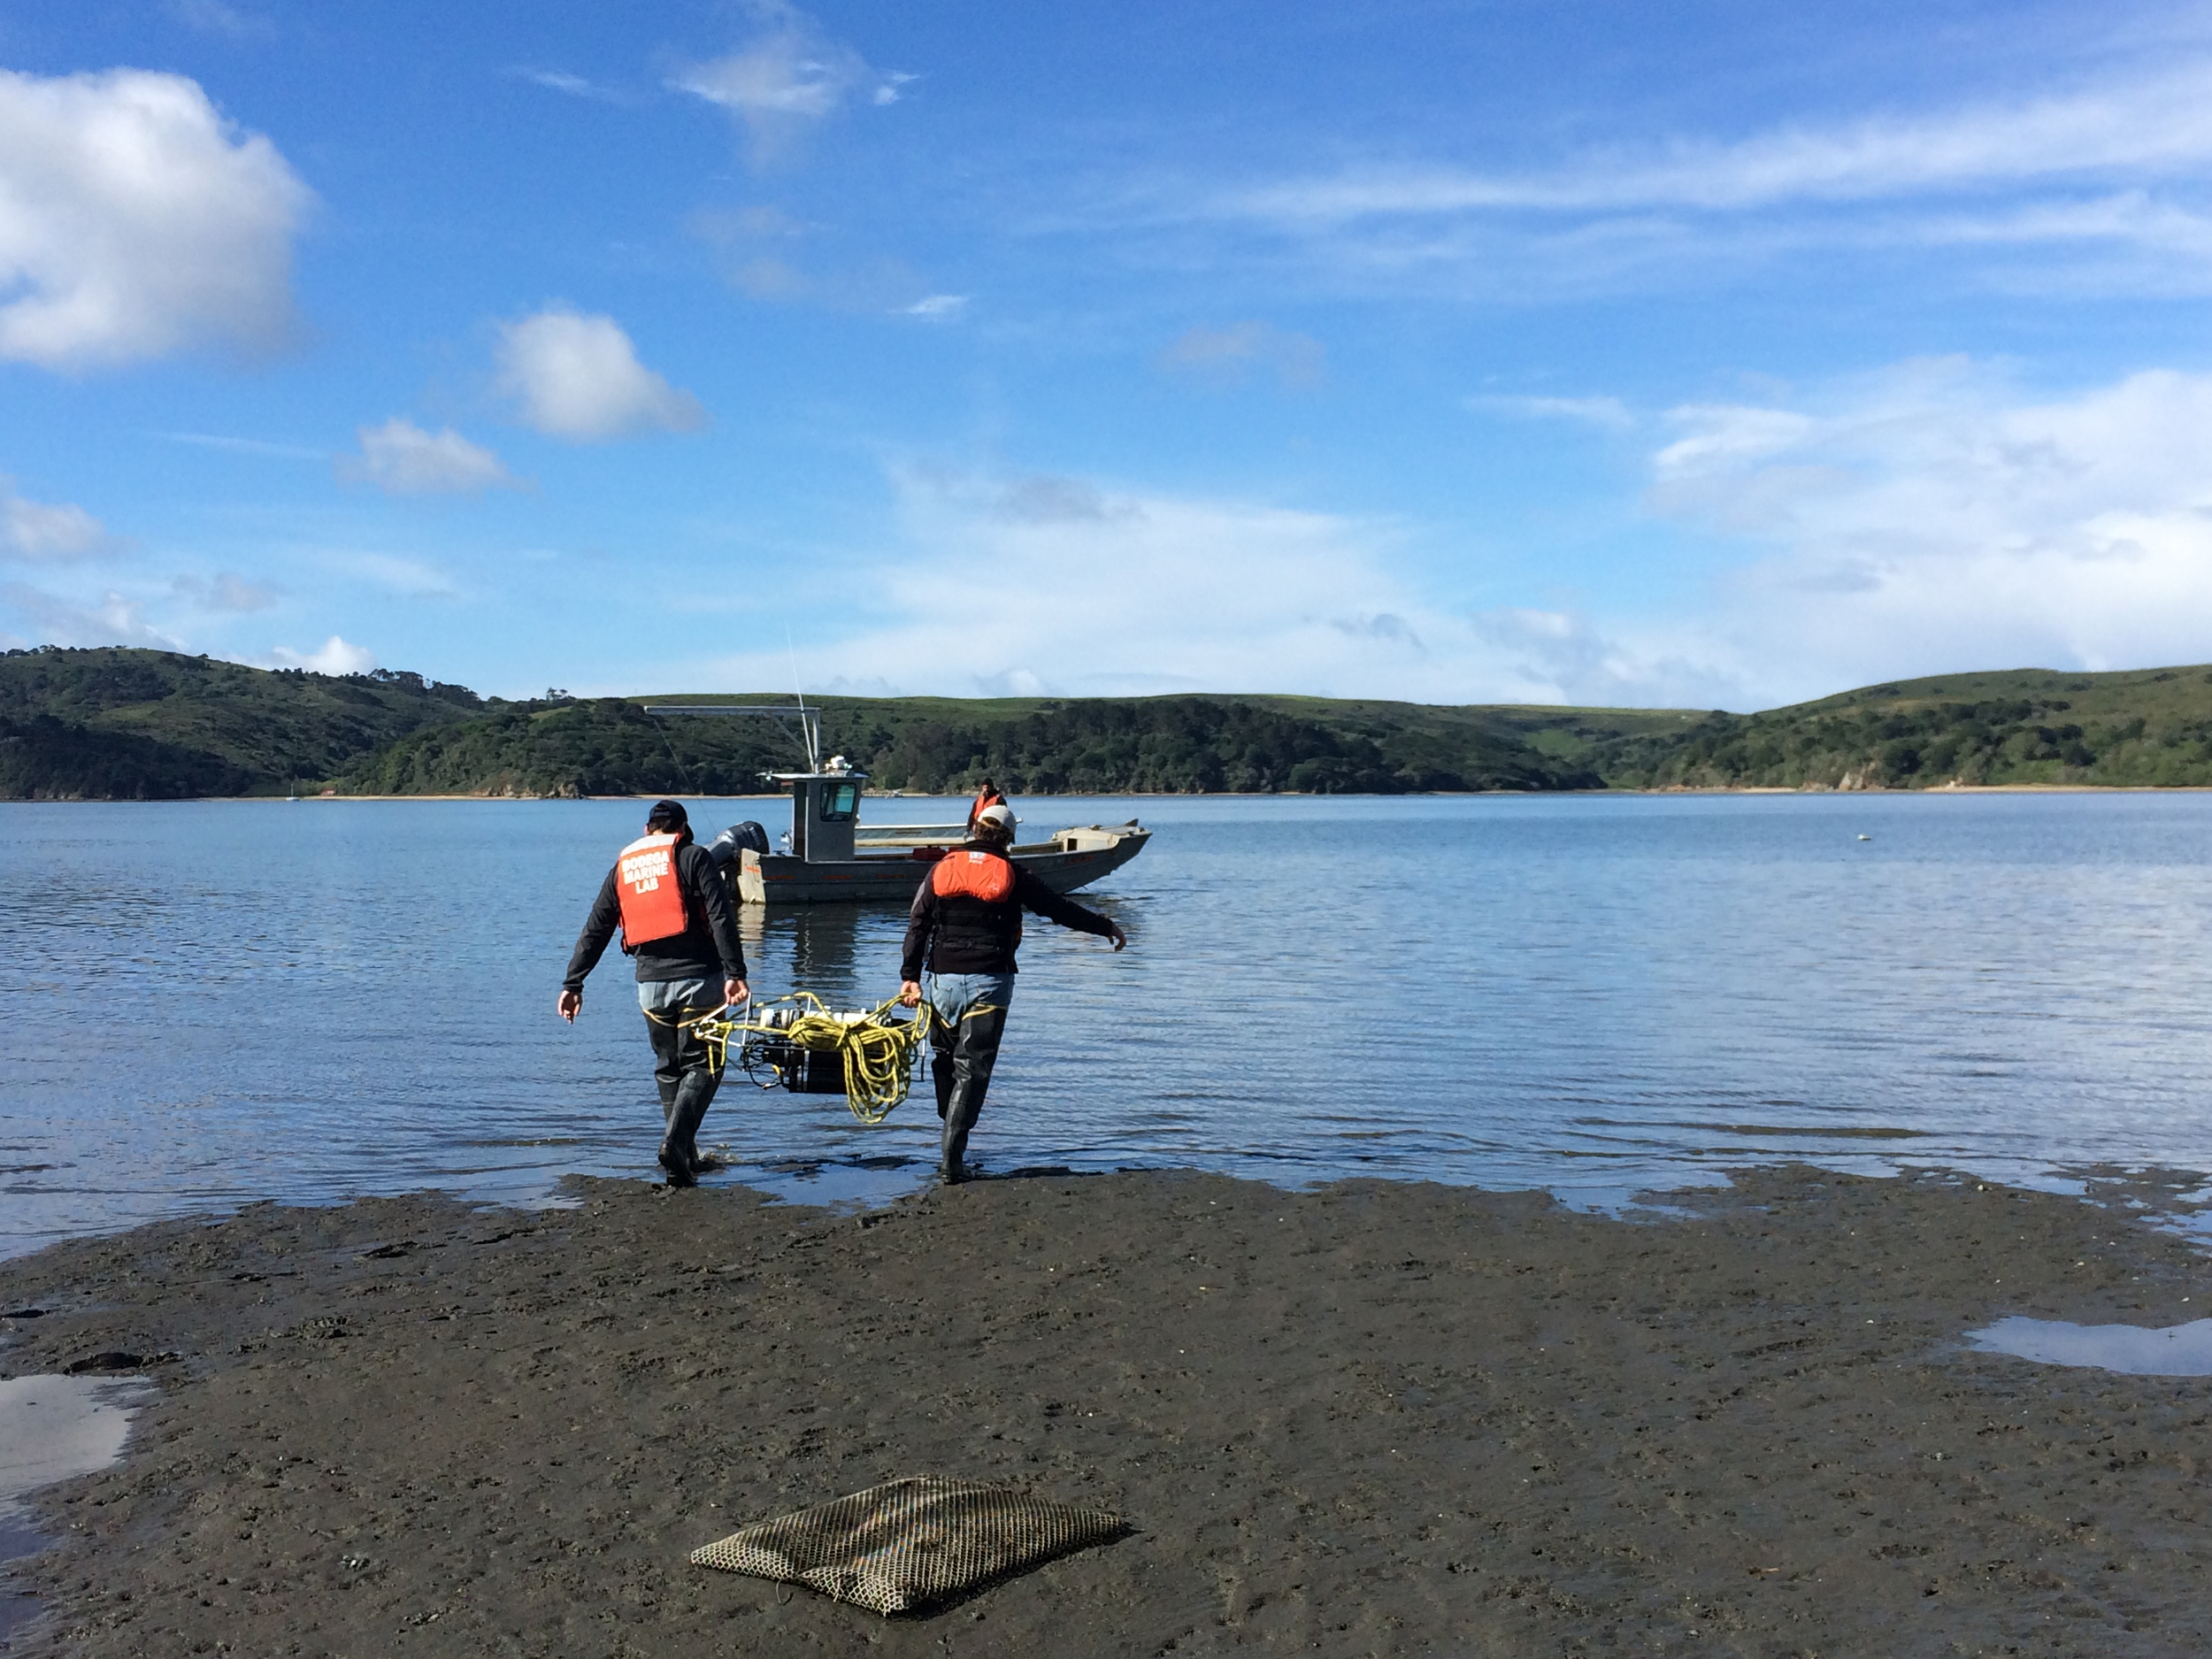 Deploying instruments at Hog Island Oyster Co.